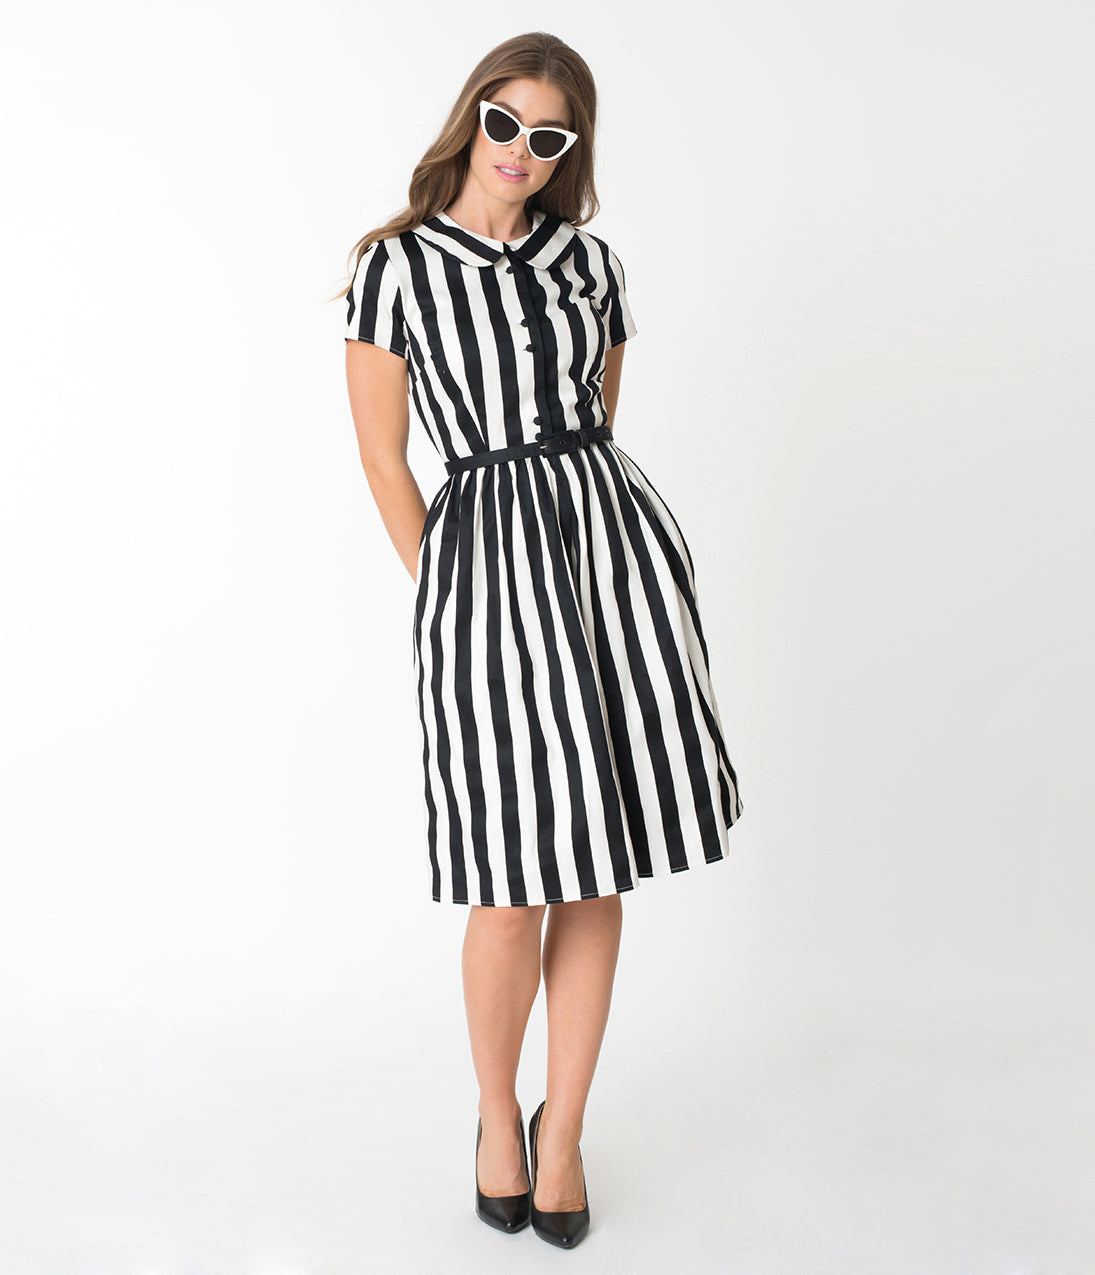 Rockabilly Dresses | Rockabilly Clothing | Viva Las Vegas Unique Vintage 1960S Style Black  White Striped Regina Shirtdress $118.00 AT vintagedancer.com